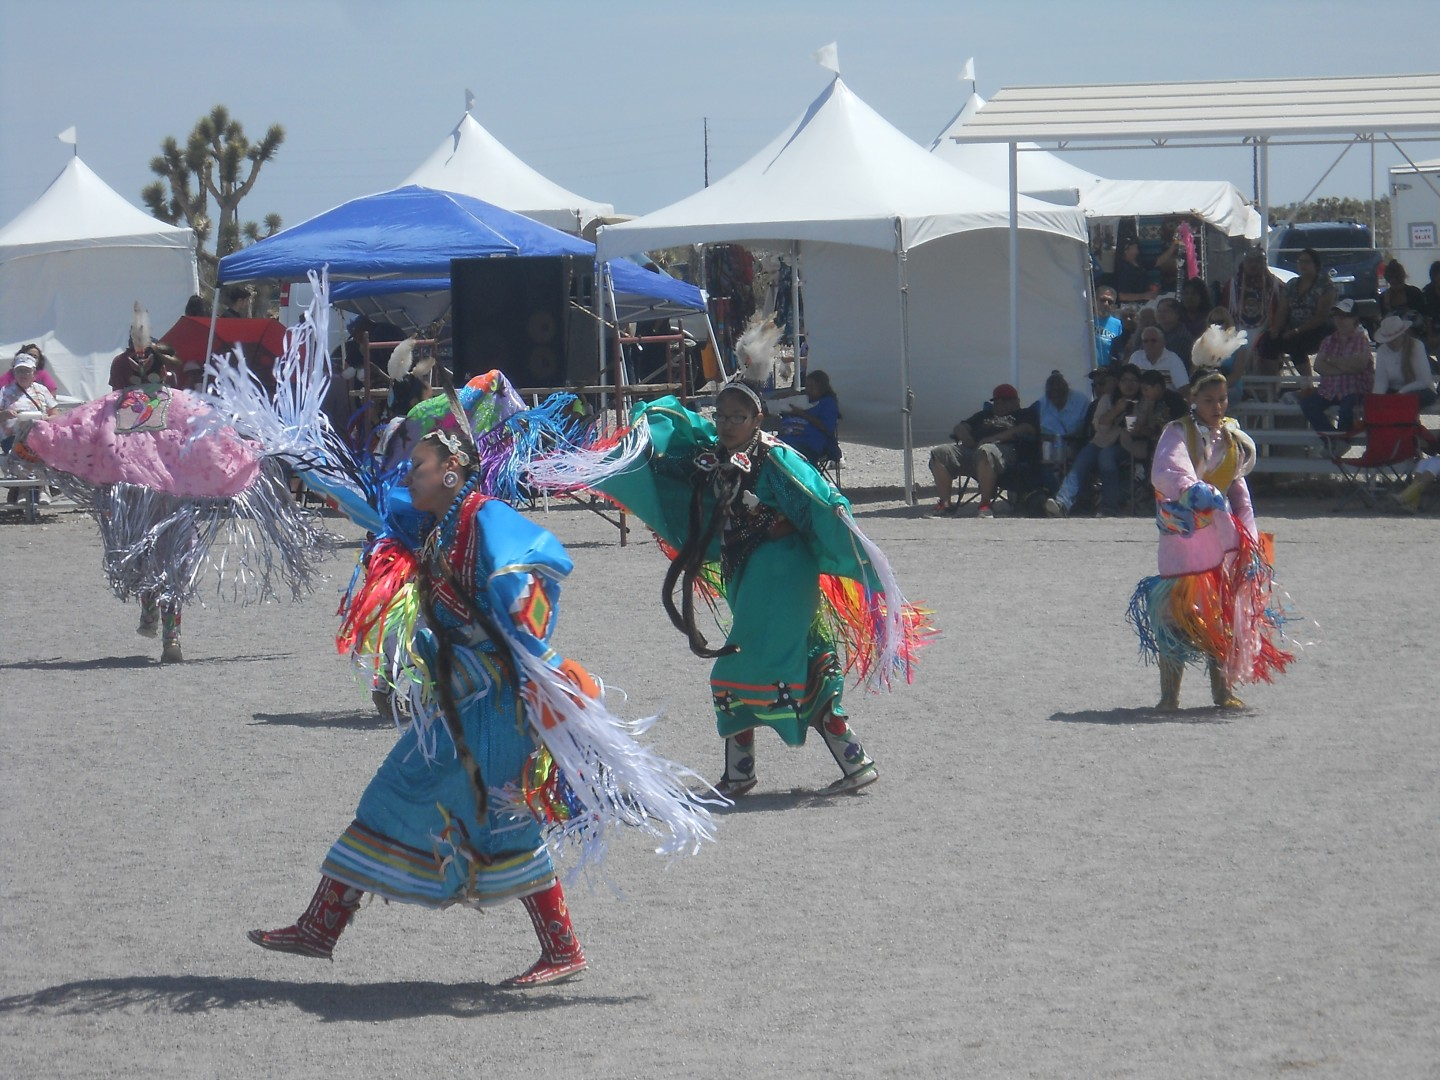 Dancers at the 25th annual Memorial Day Snow Mountain Powwow at the Las Vegas Band of Paiutes, Las Vegas, Nevada, May 24, 2014 | Photo by Aspen Stoddard, St. George News